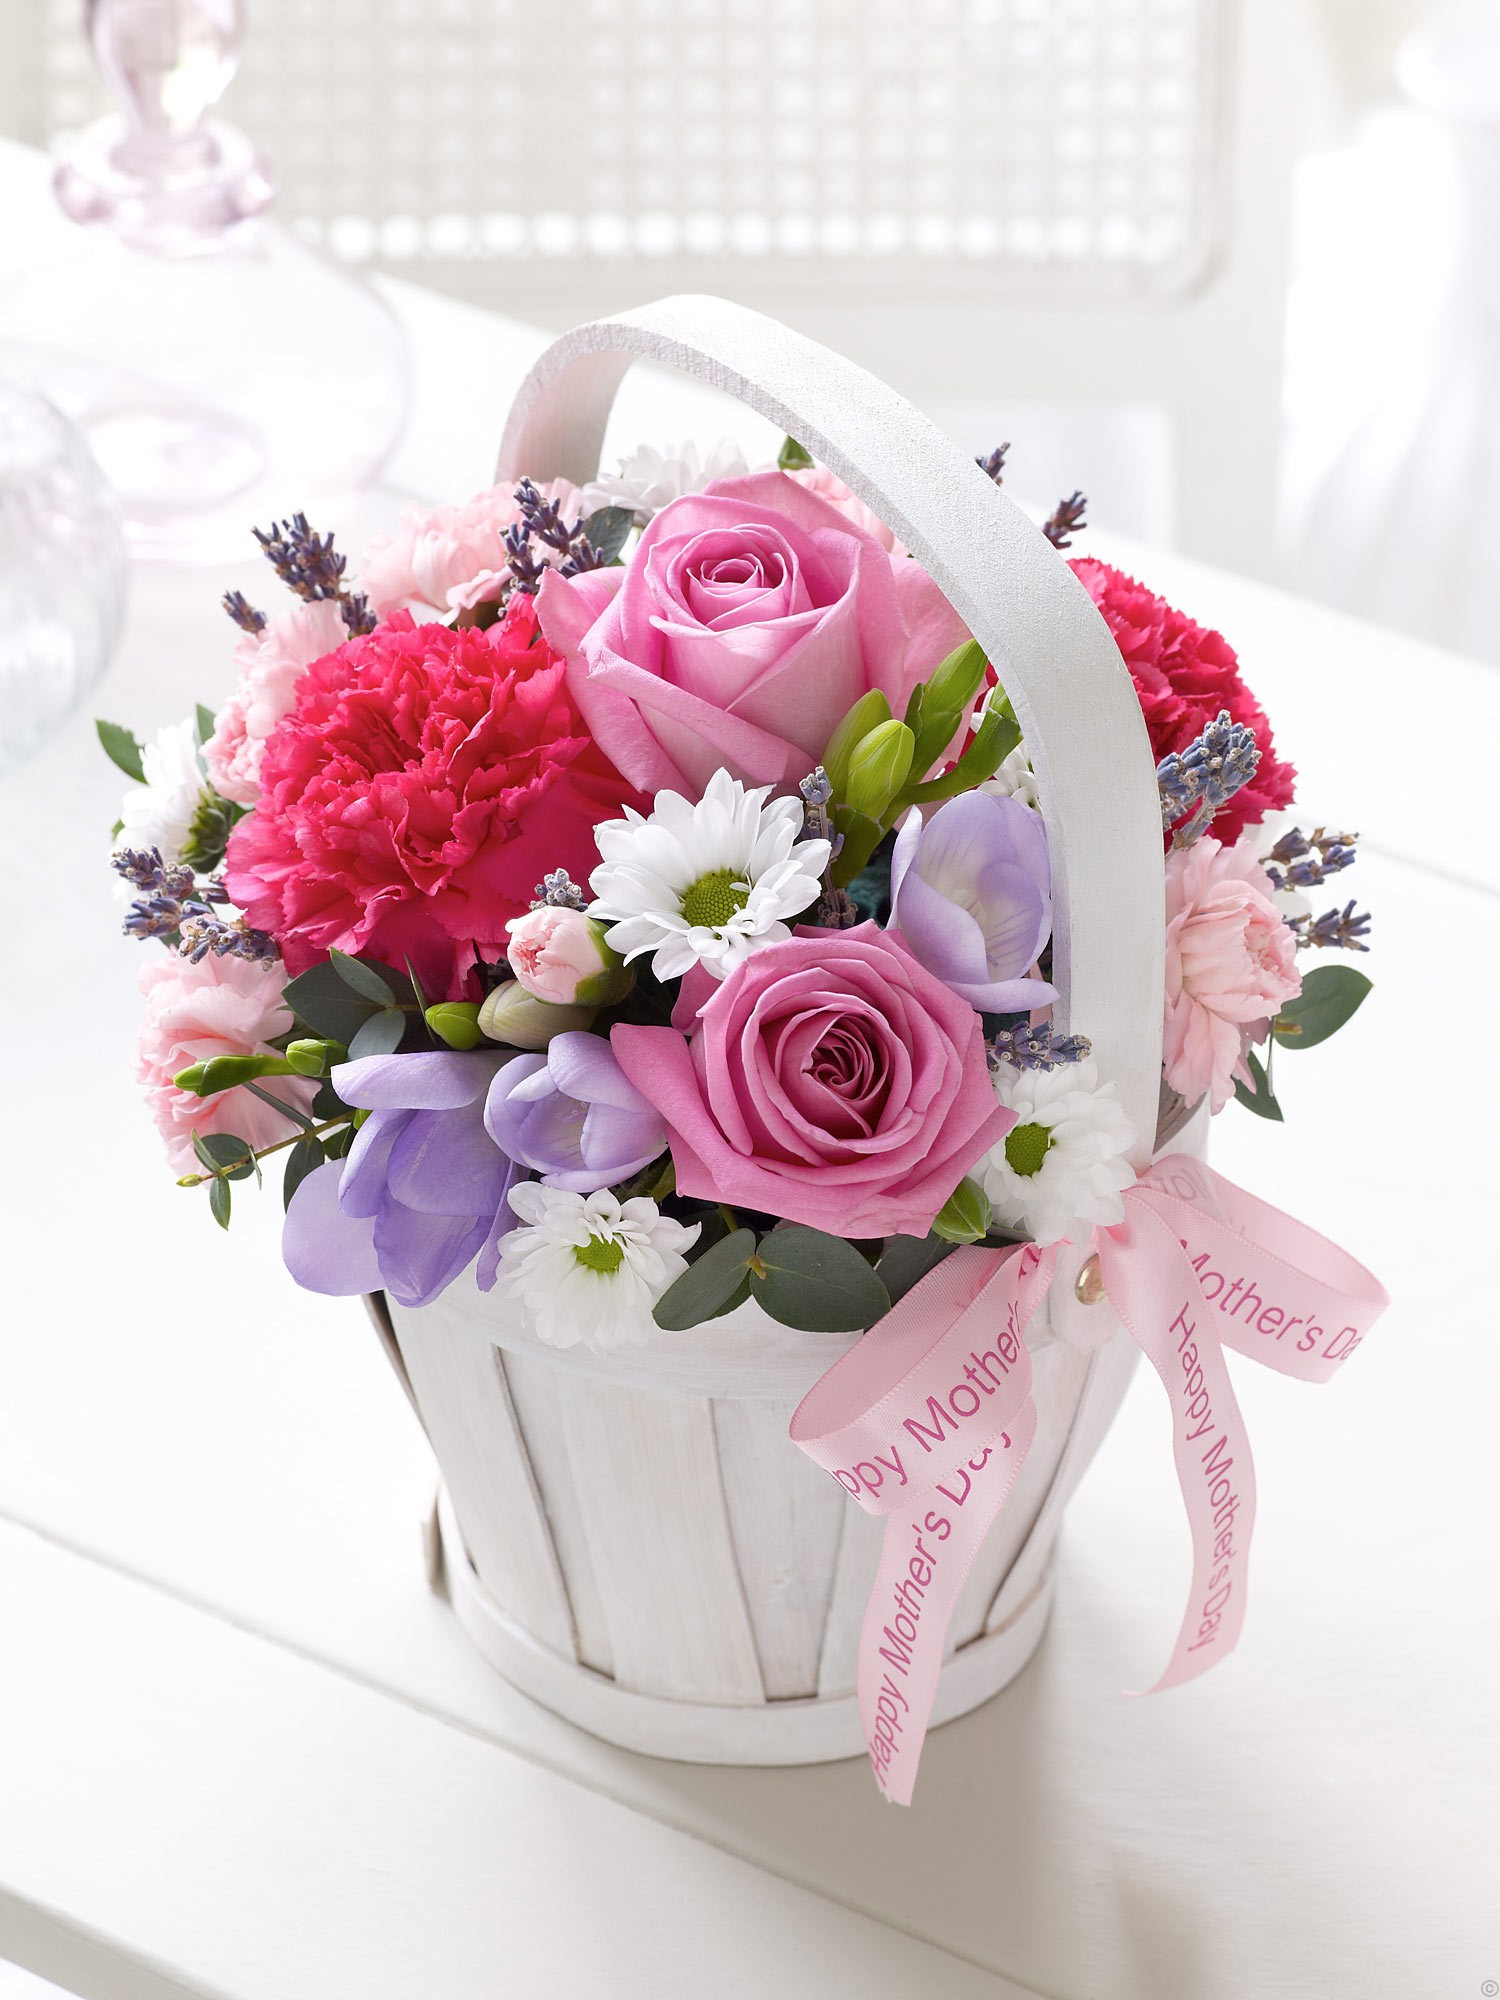 25 Best Mothers Day Flowers Ideas